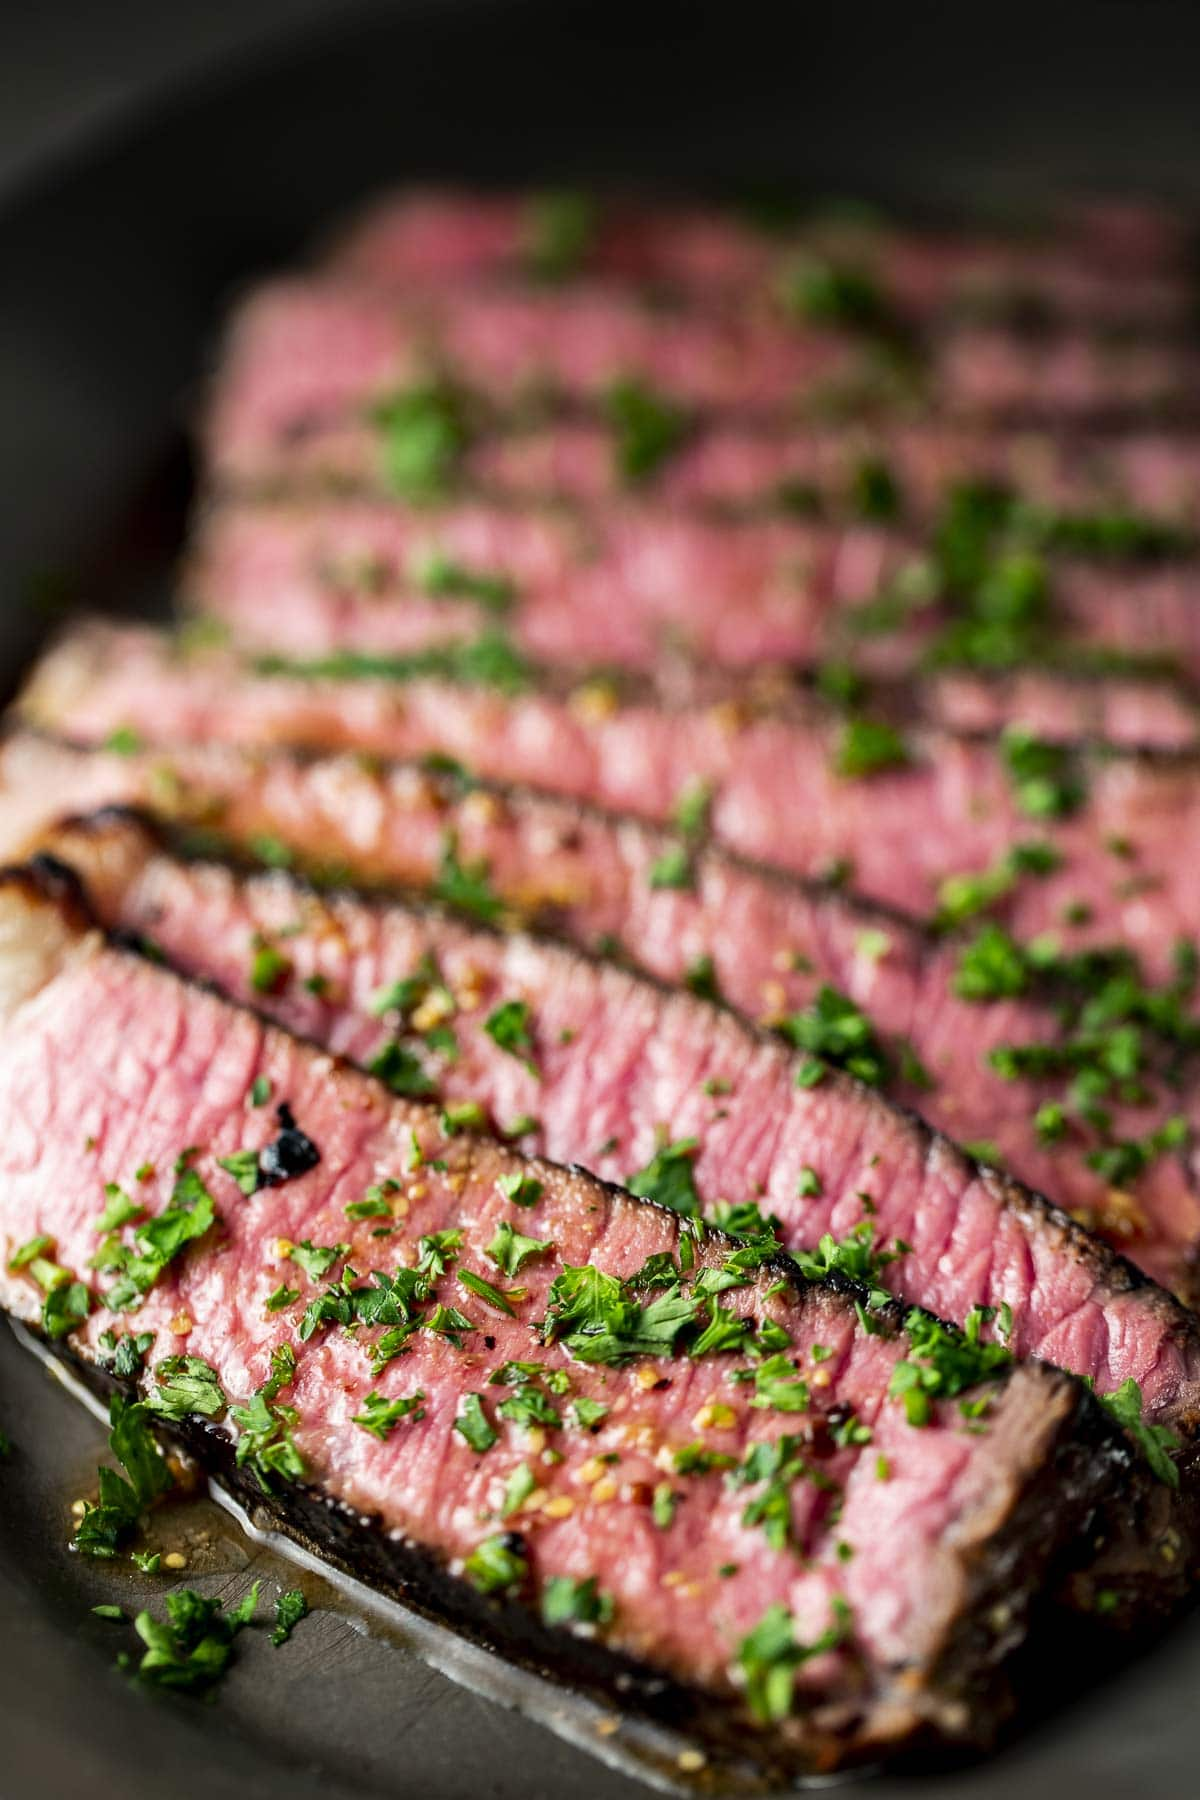 Steak cut across the grain and topped with chopped herbs.